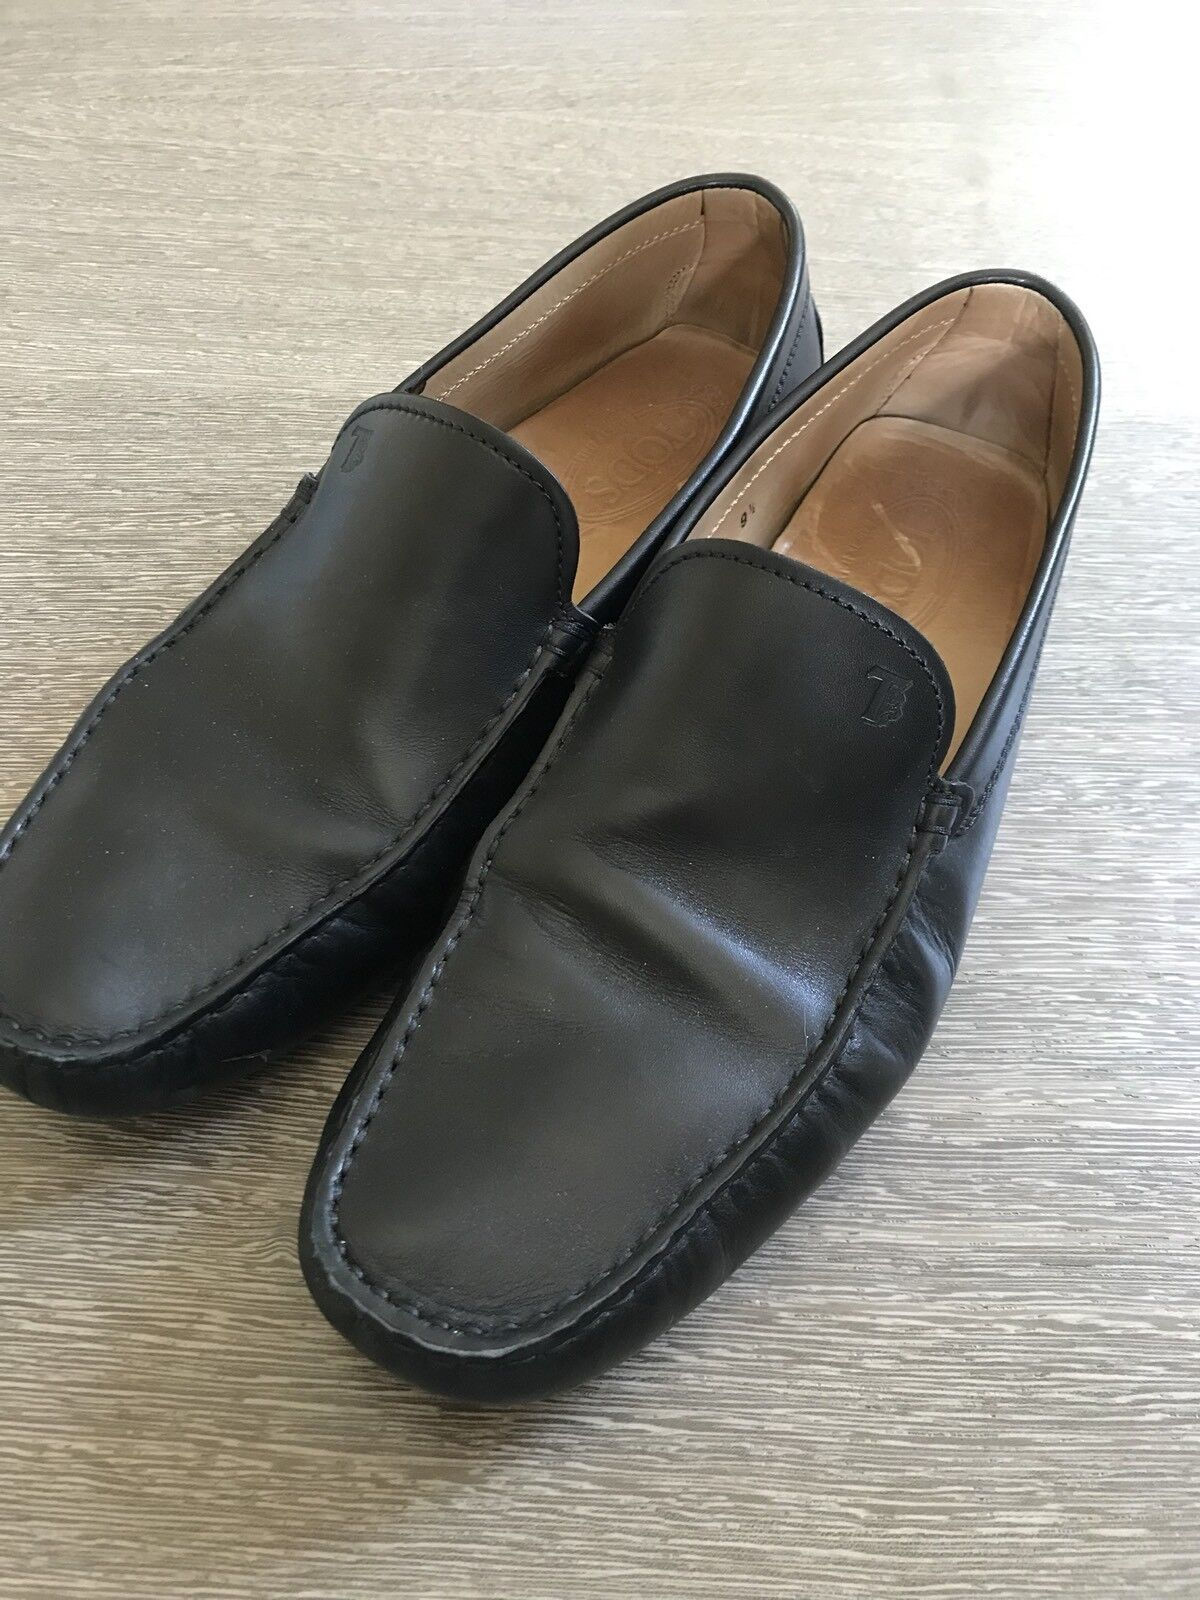 Tod's Black Leather Slip On Loafer Driving shoes Size 9 1 2